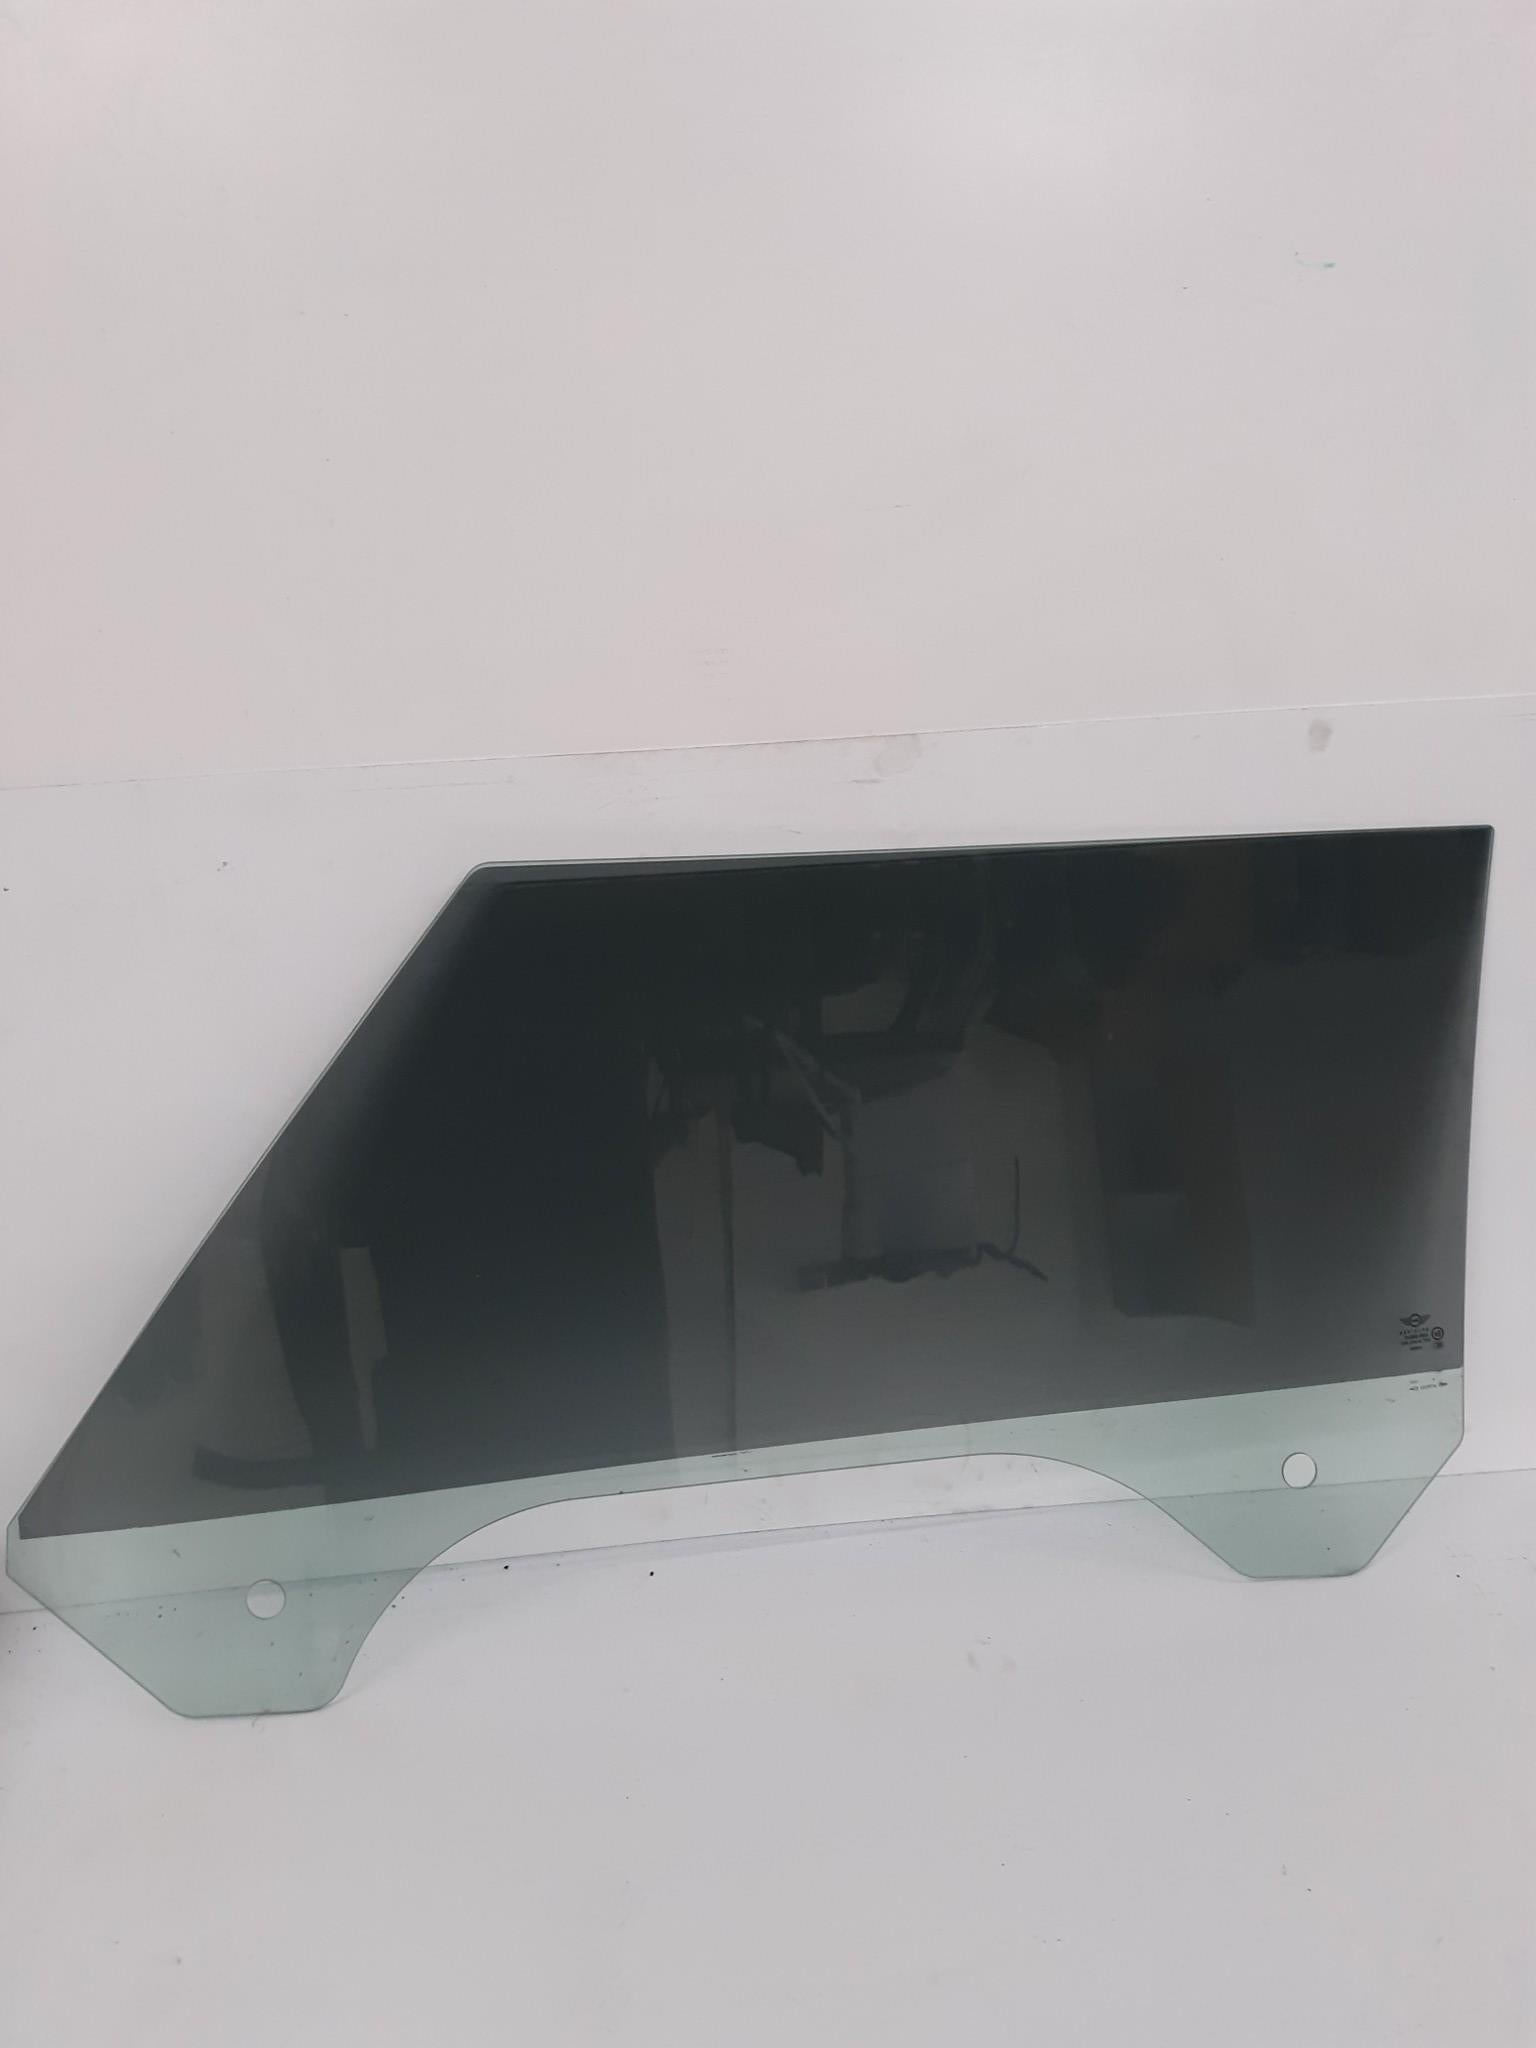 2002-2008 Mini Cooper R50 R52 R53 Front Right  Window Door Glass w/ Tint - Click Receive Auto Parts